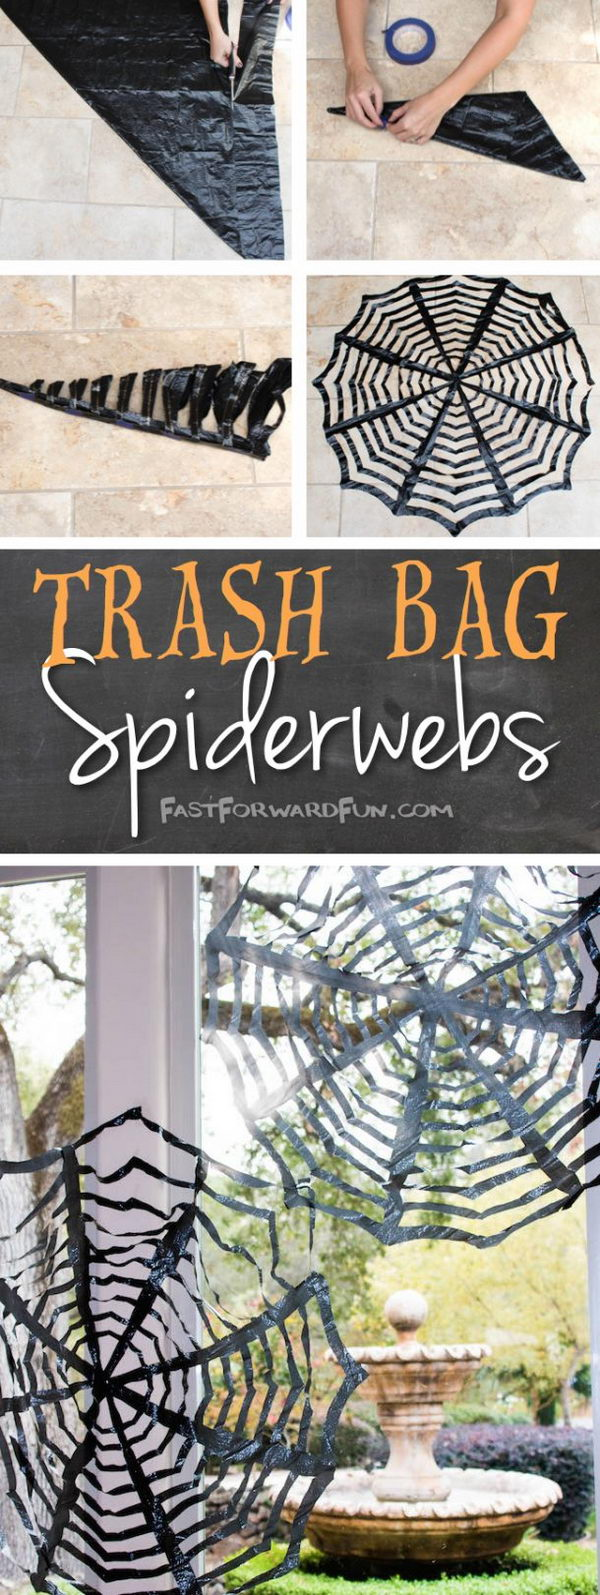 DIY Trash Bags Spiderwebs.